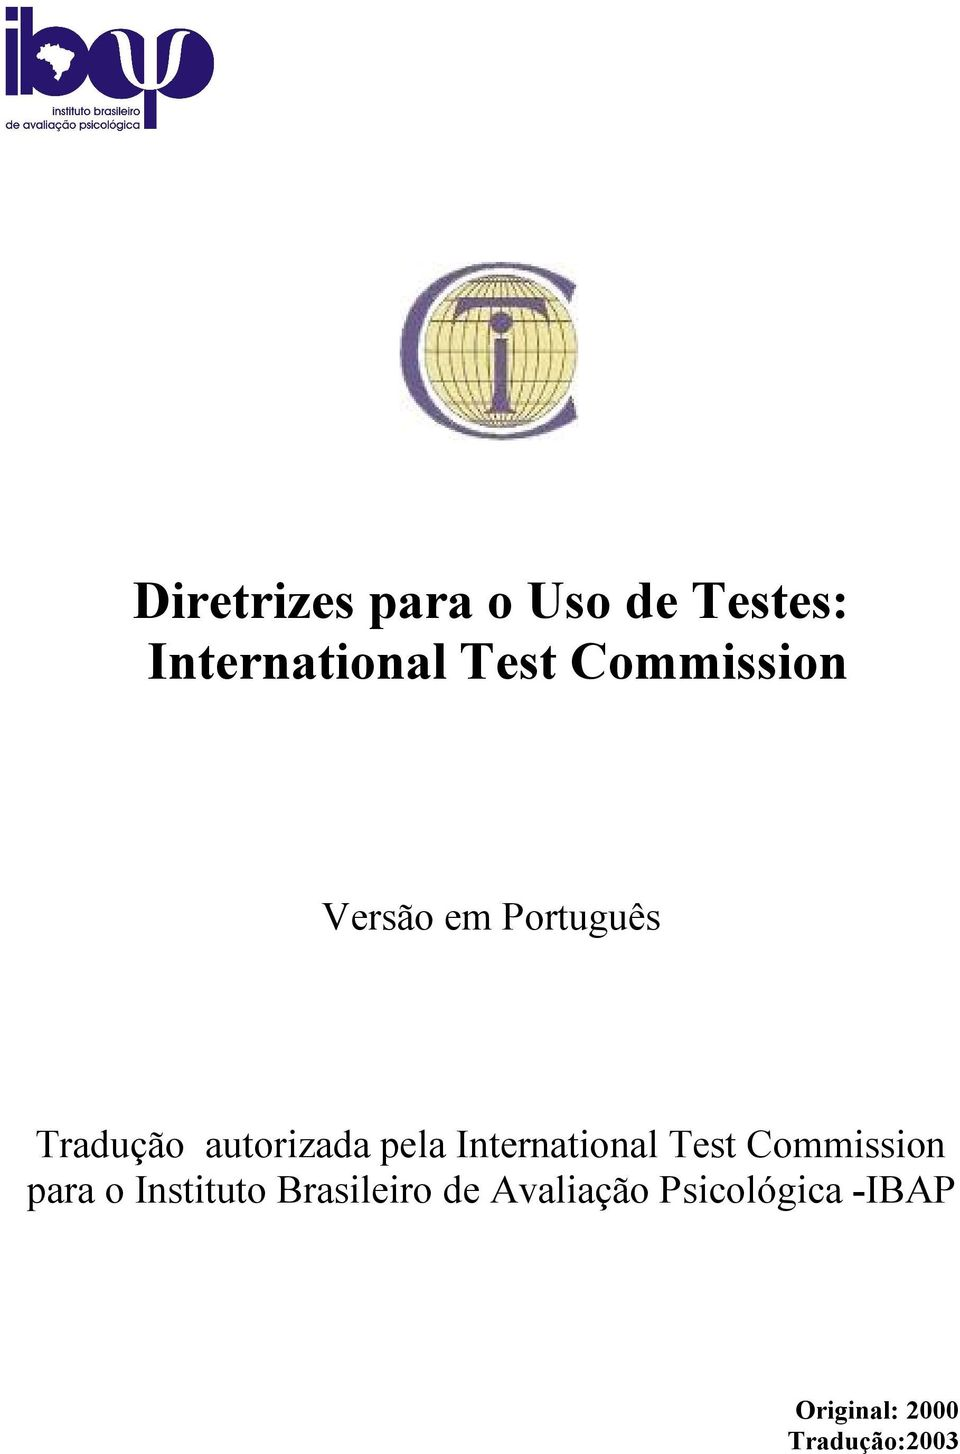 International Test Commission para o Instituto